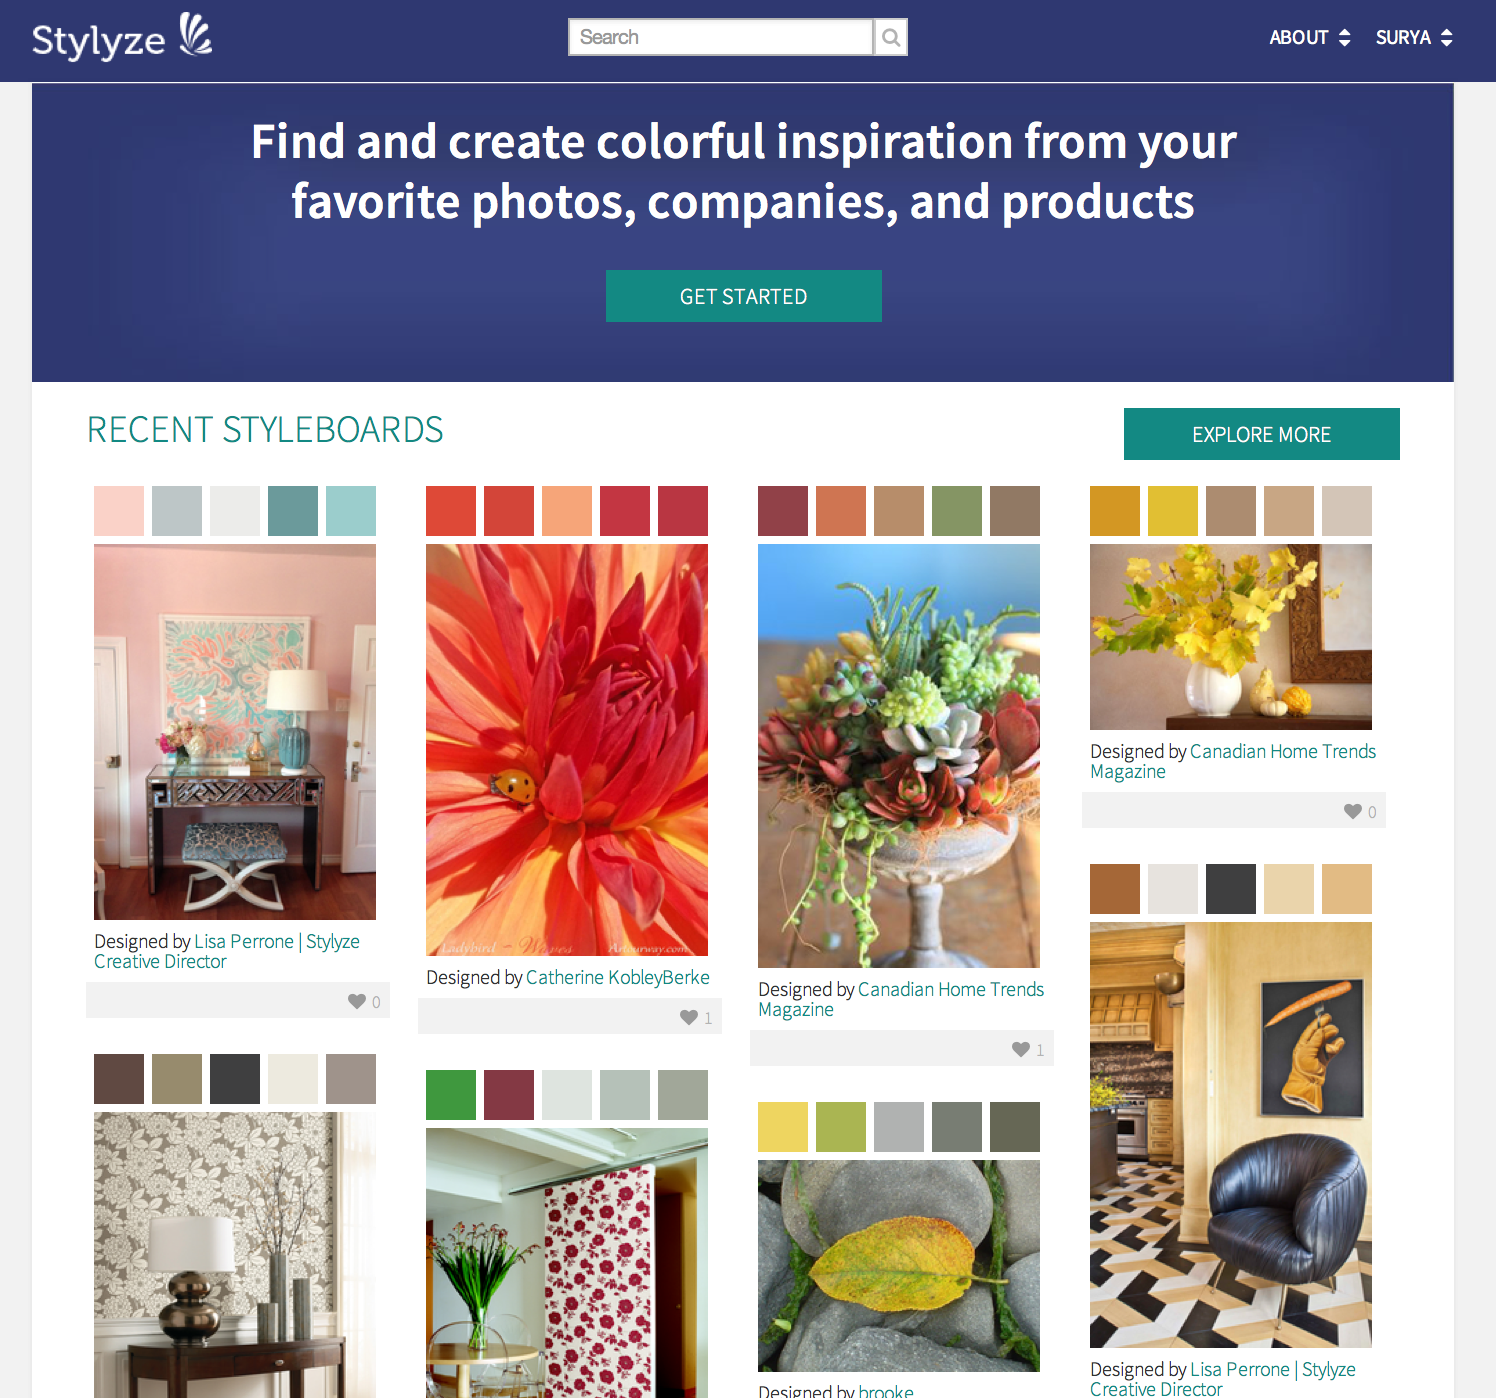 Paint colors website - Color Crazed Website Stylyze Makes It Easy To Coordinate Paint To Your Photos And